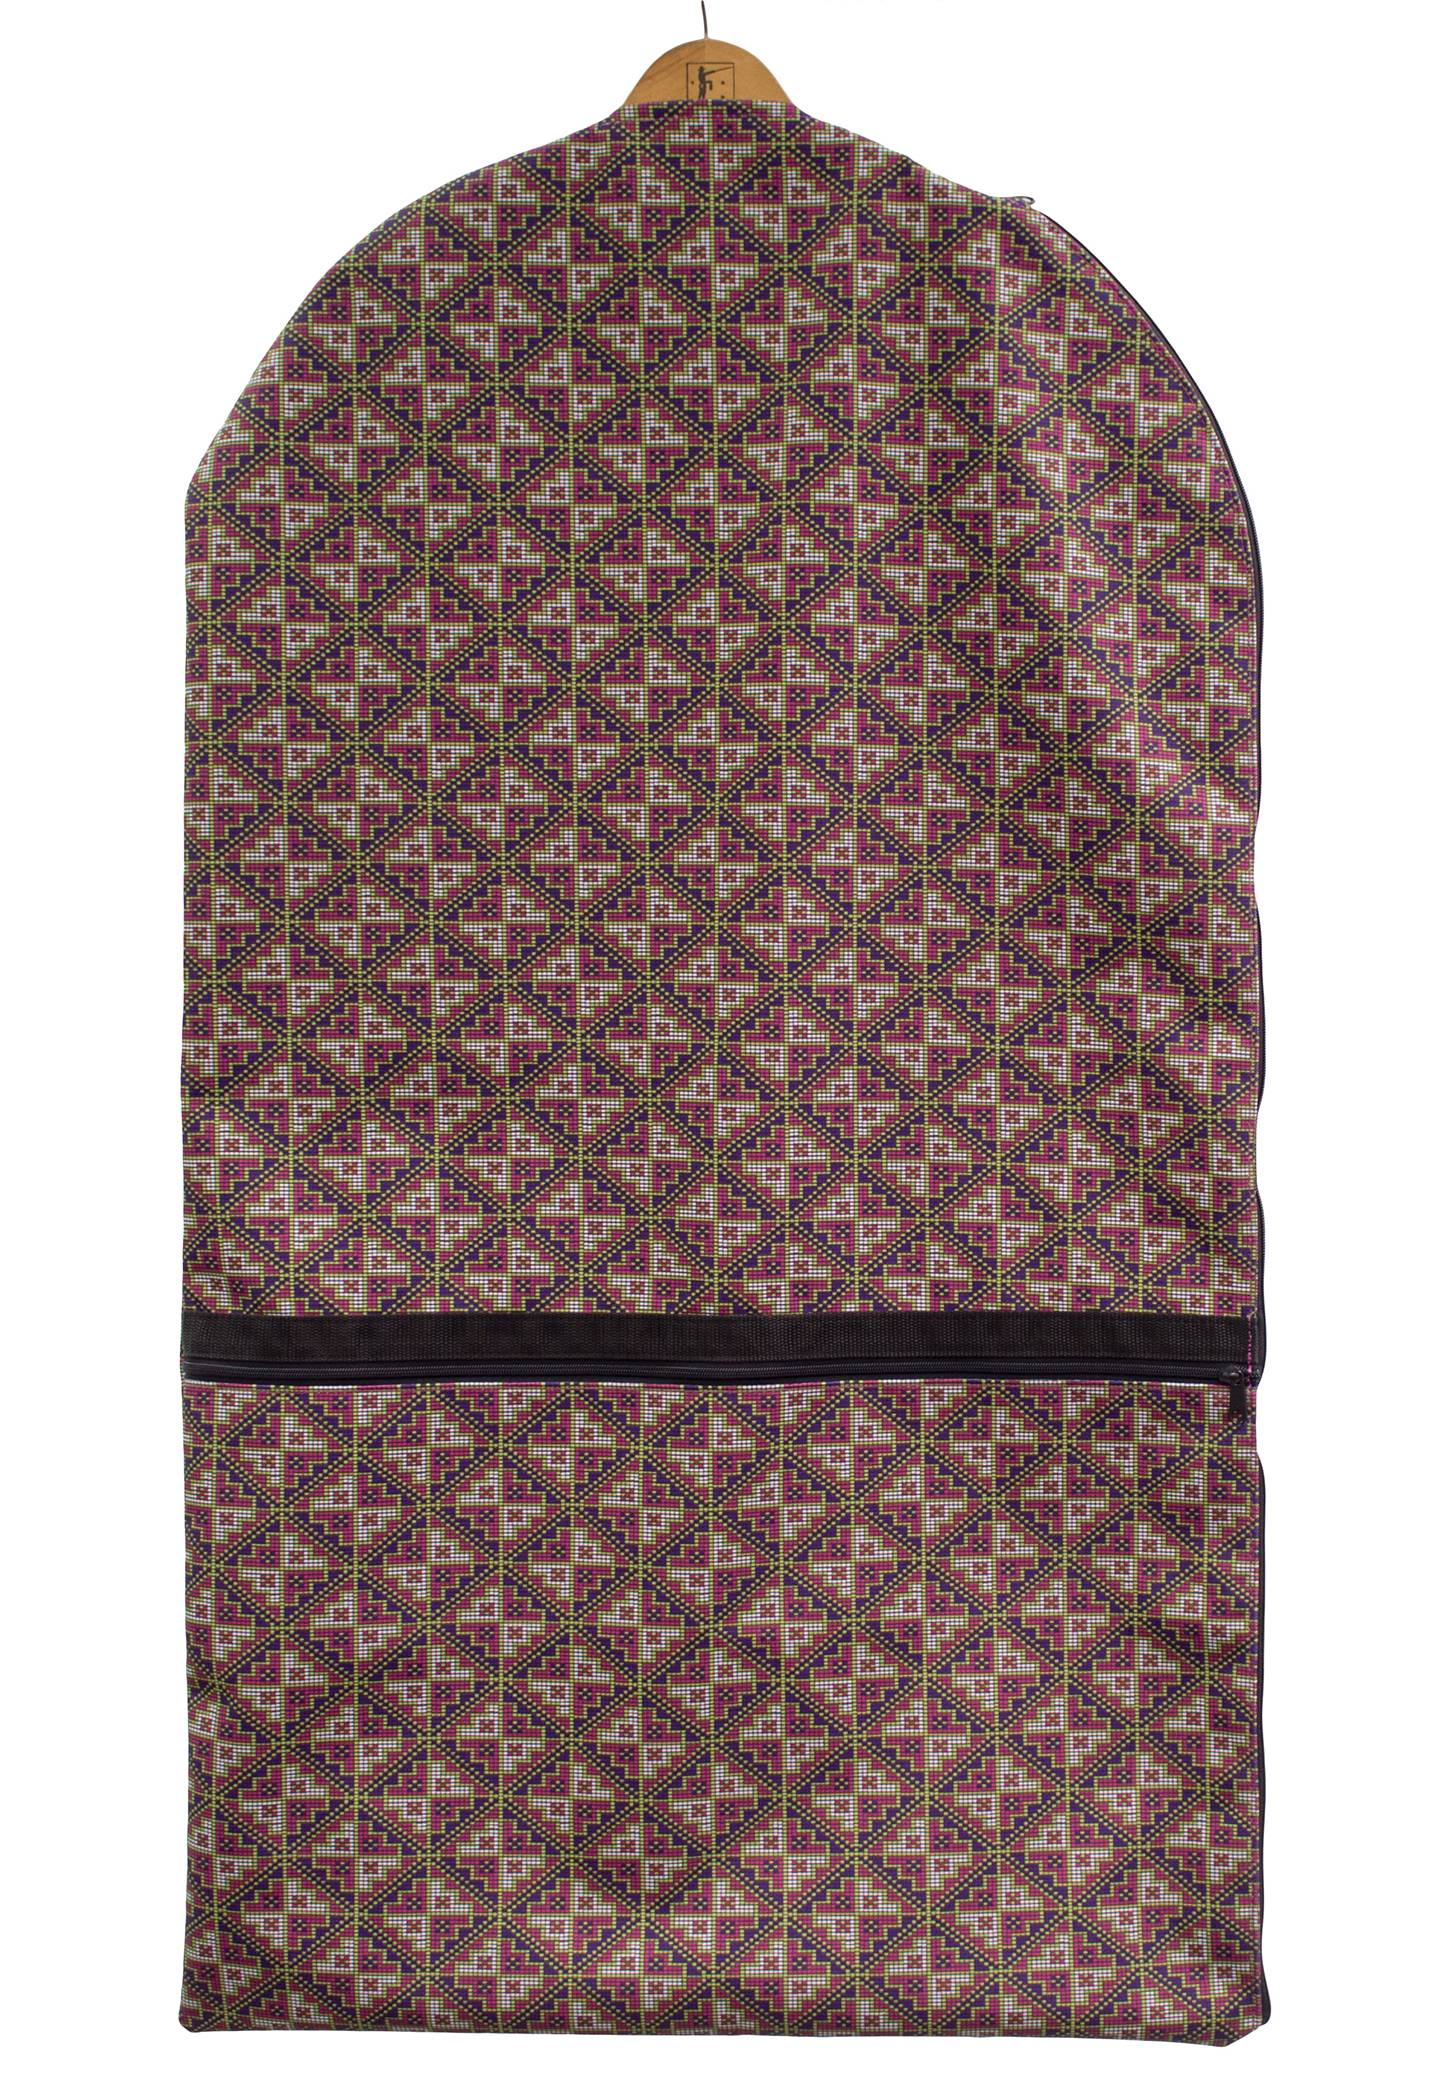 Lami-Cell Aztec Garment Bag